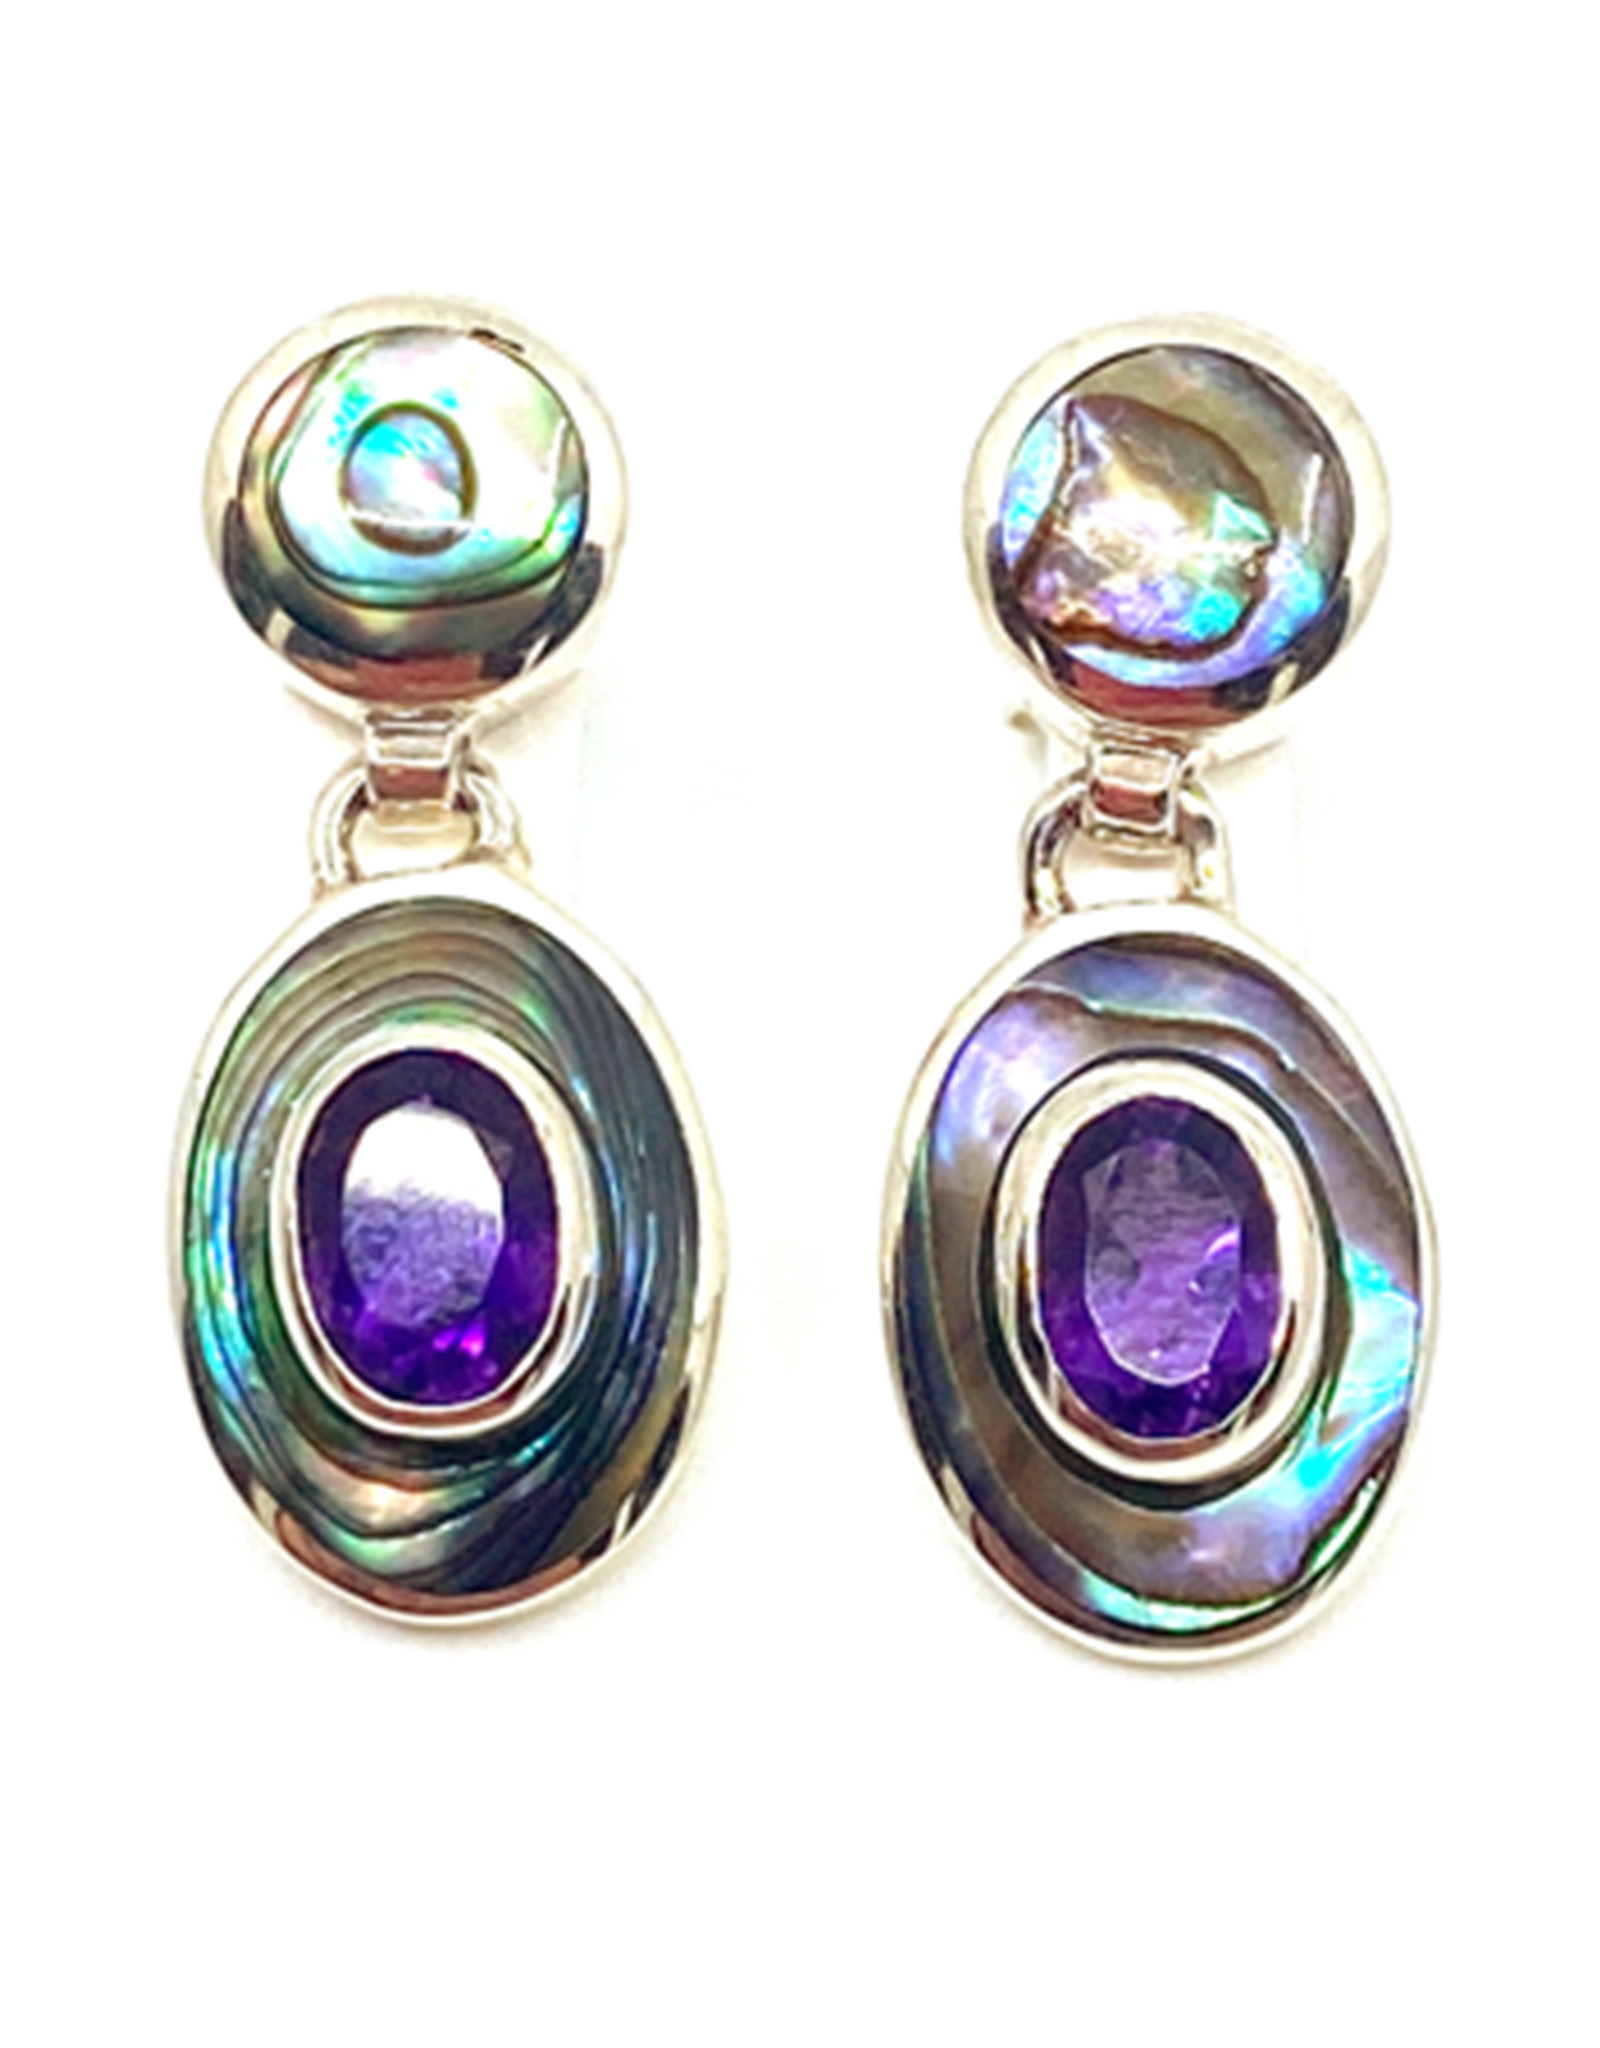 ACLEONI ABALONE & AMETHYST HINGED EARRINGS